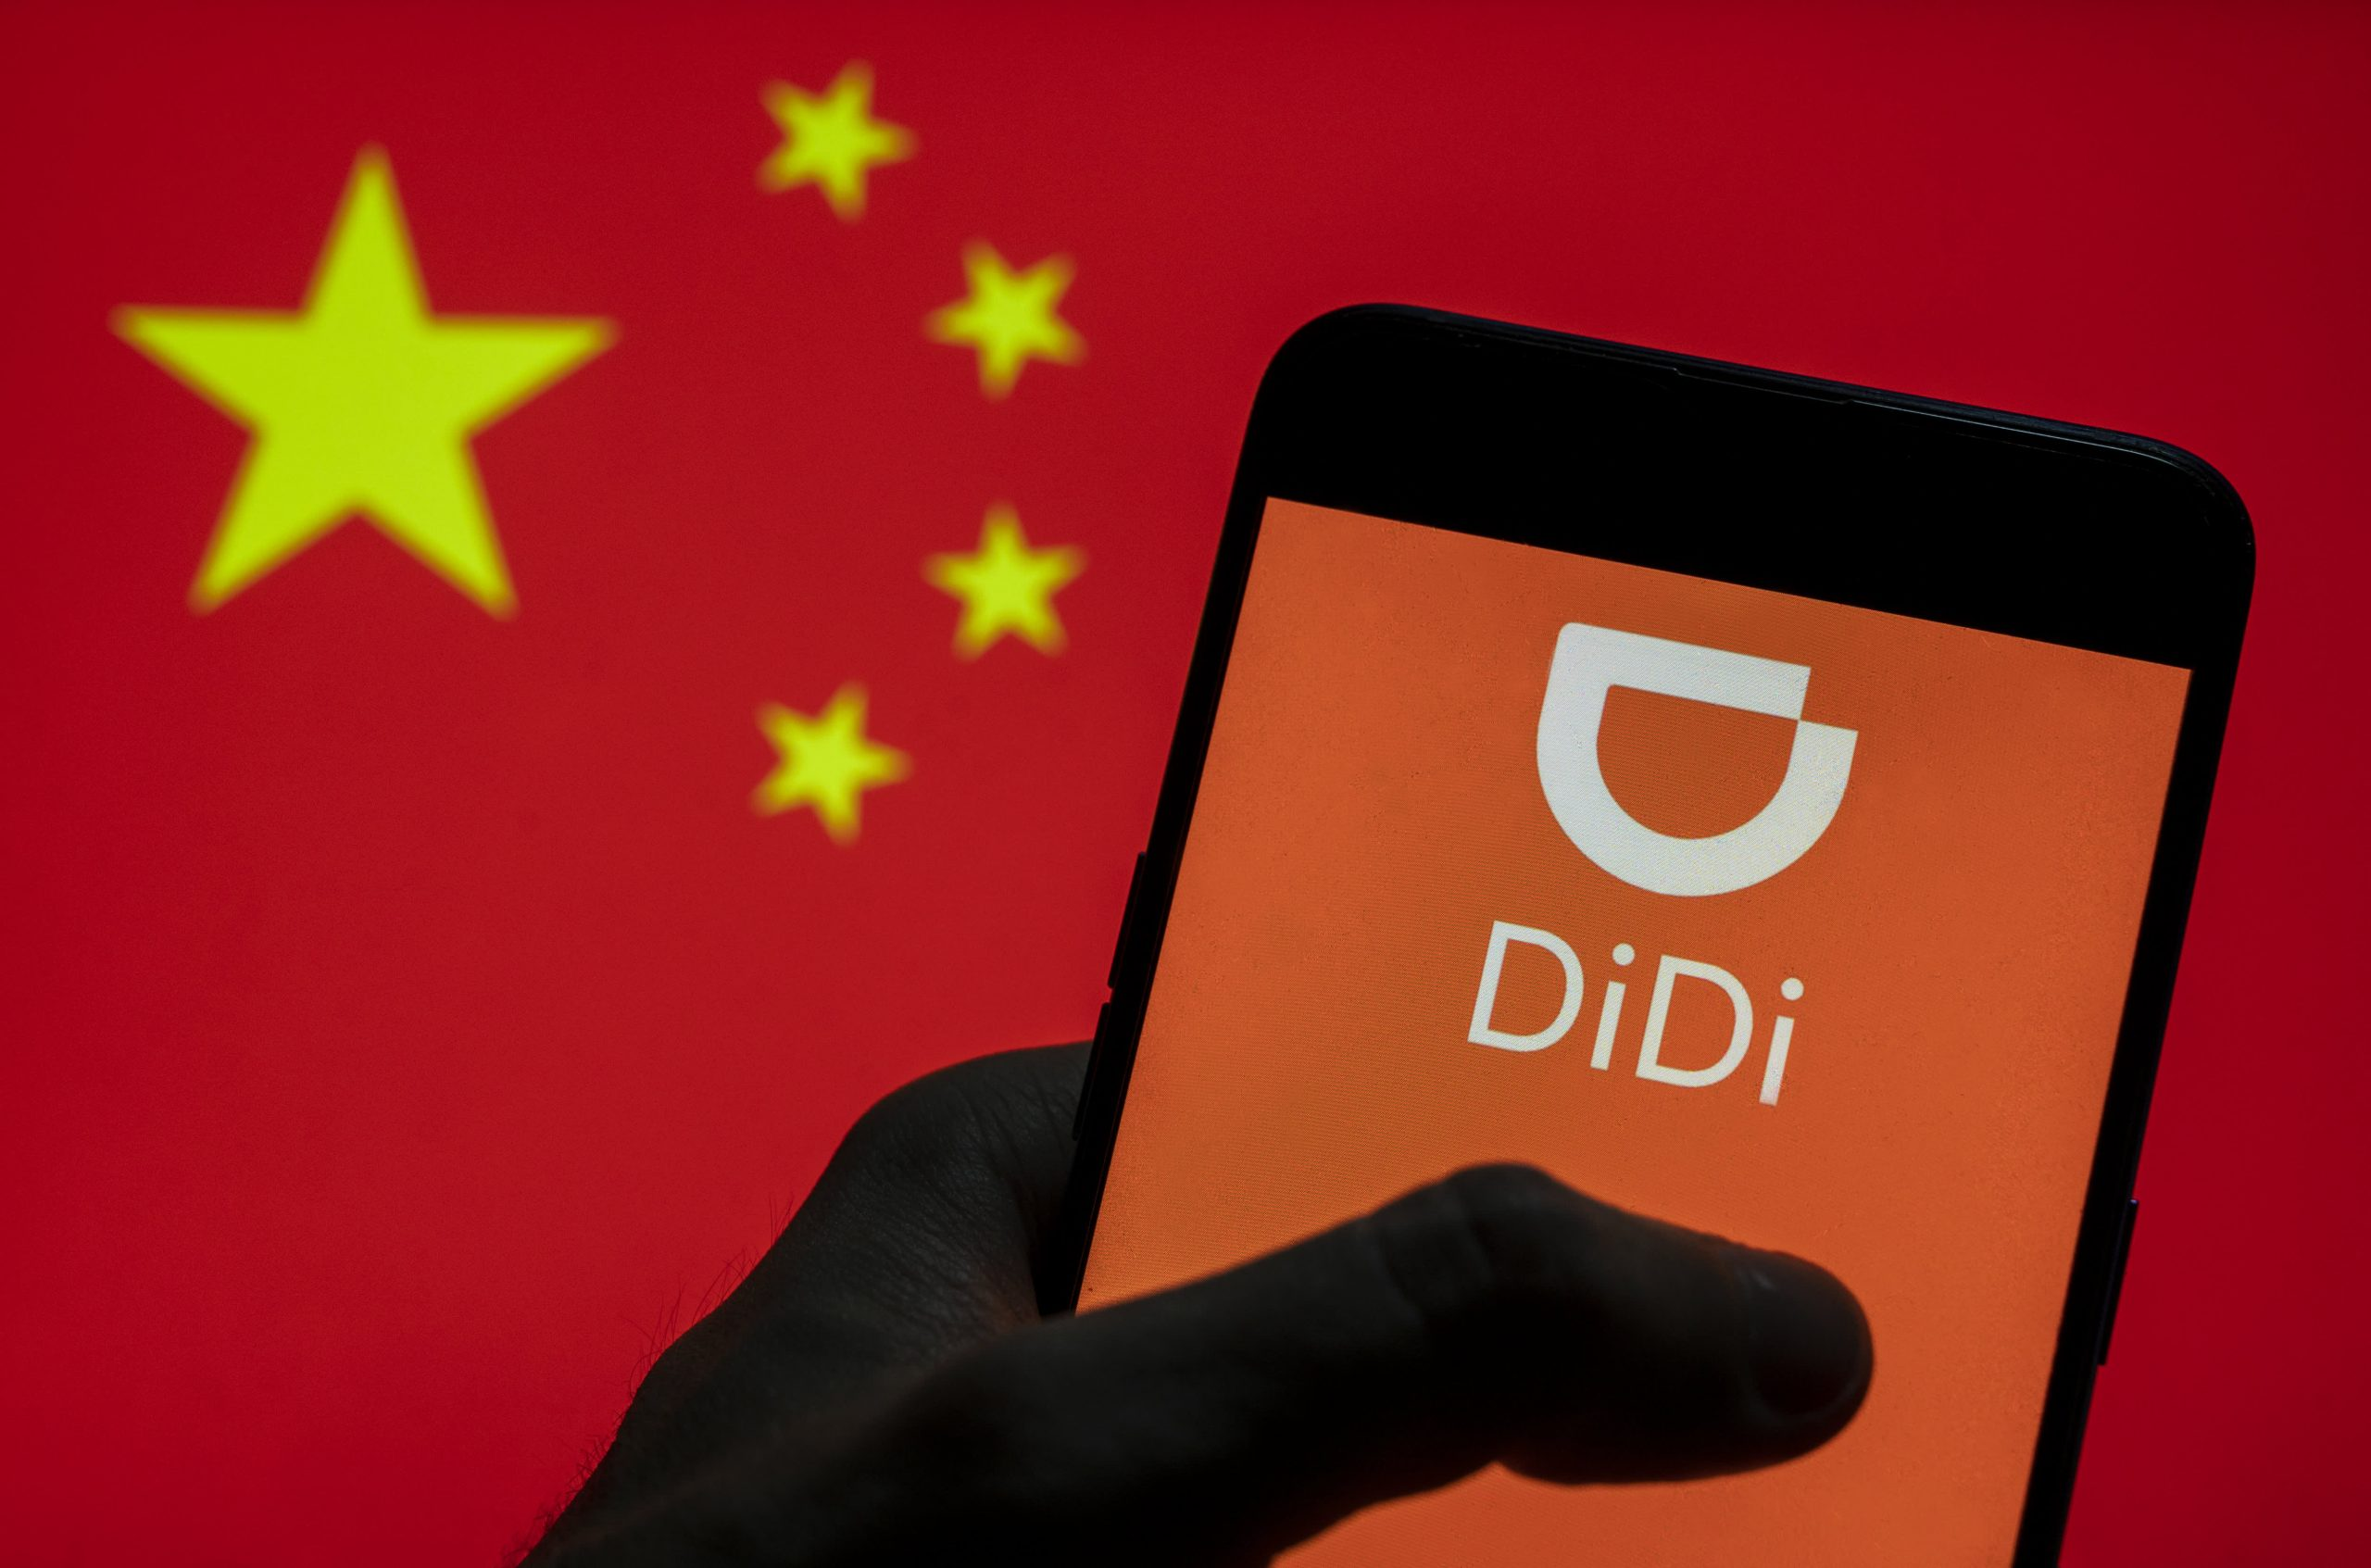 Didi jumps nearly 10% this week amid report of Chinese government taking it over